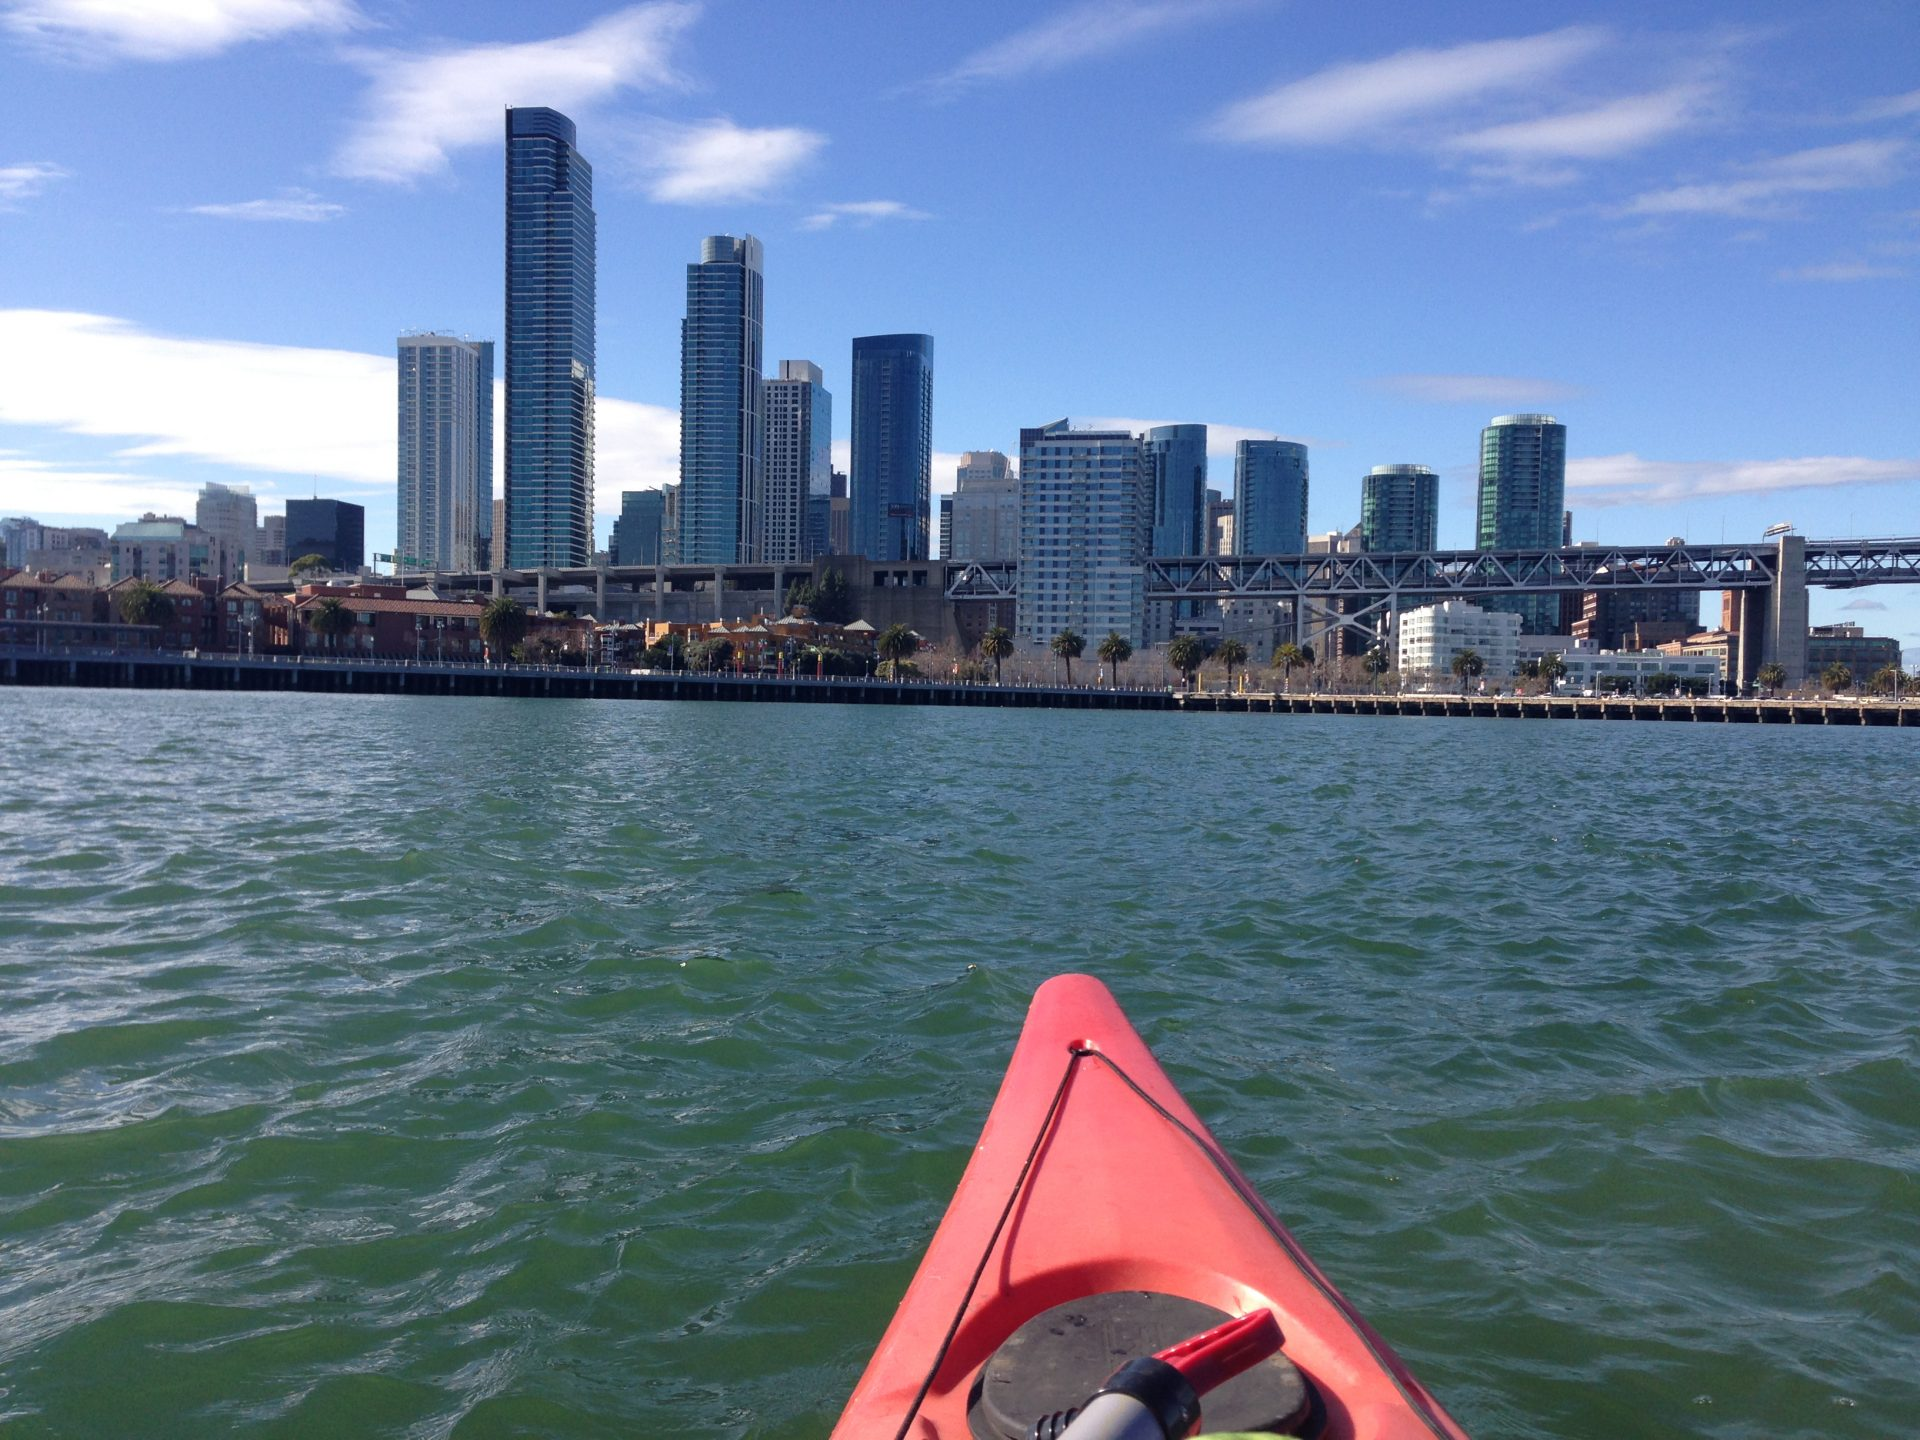 Looking from kayak to San Francisco, where Bay Bridge touches down